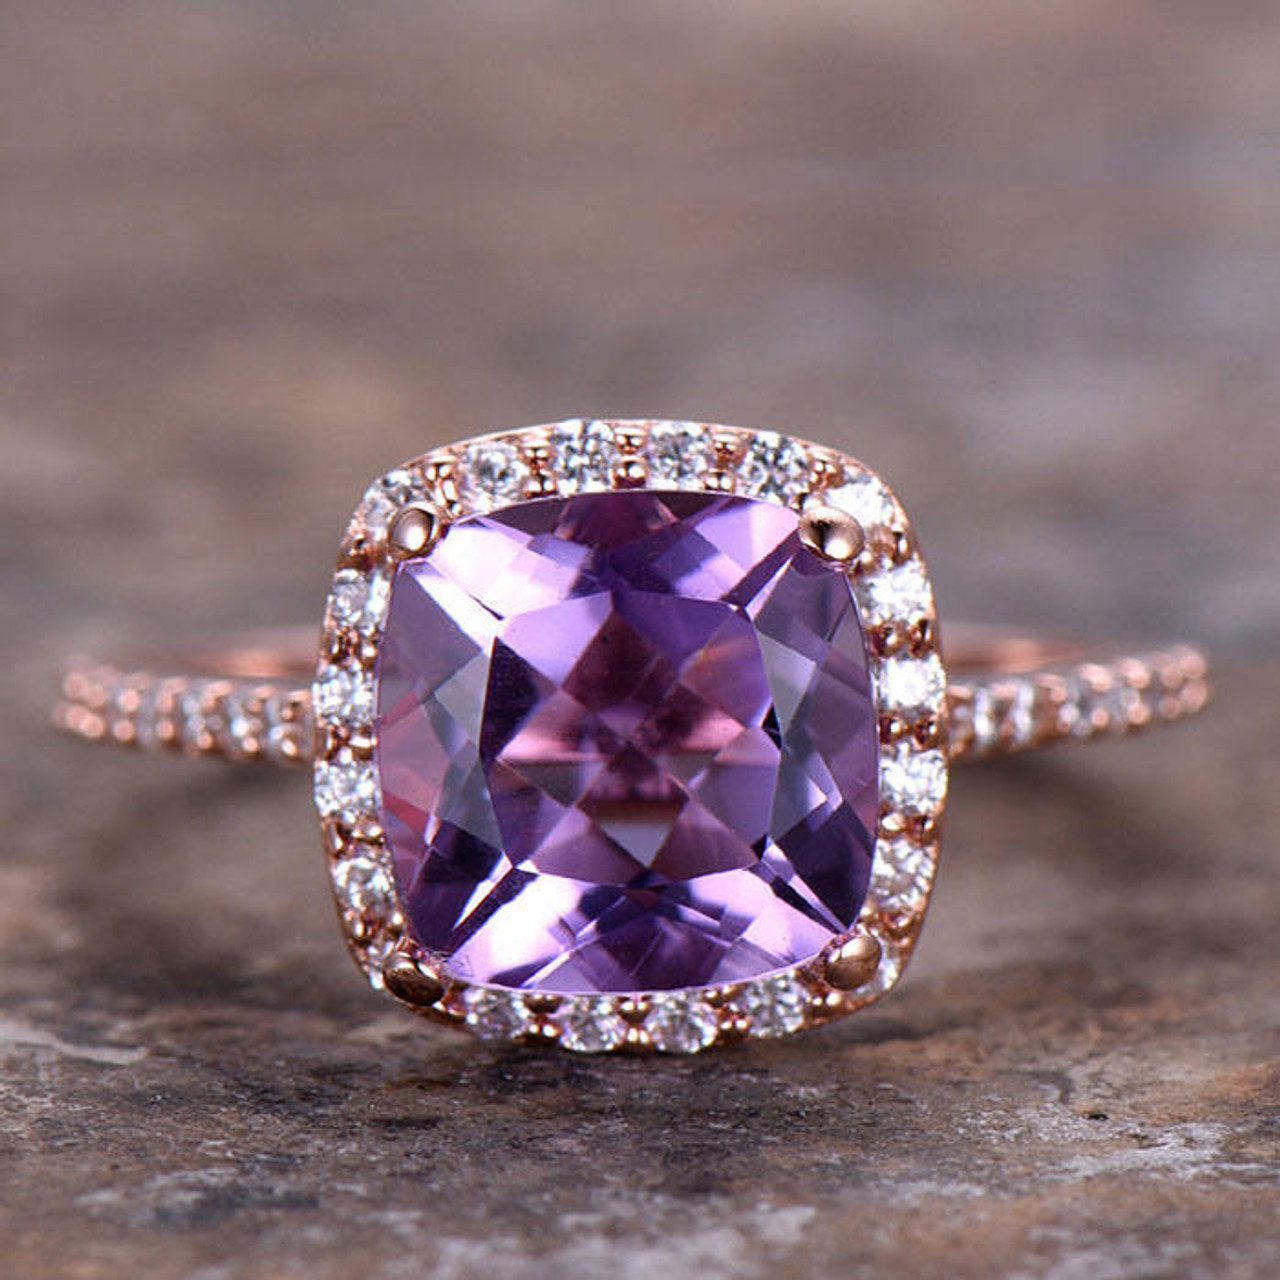 Fashion Jewelry Rings Colored Gemstone Engagement Rings Bbbgem